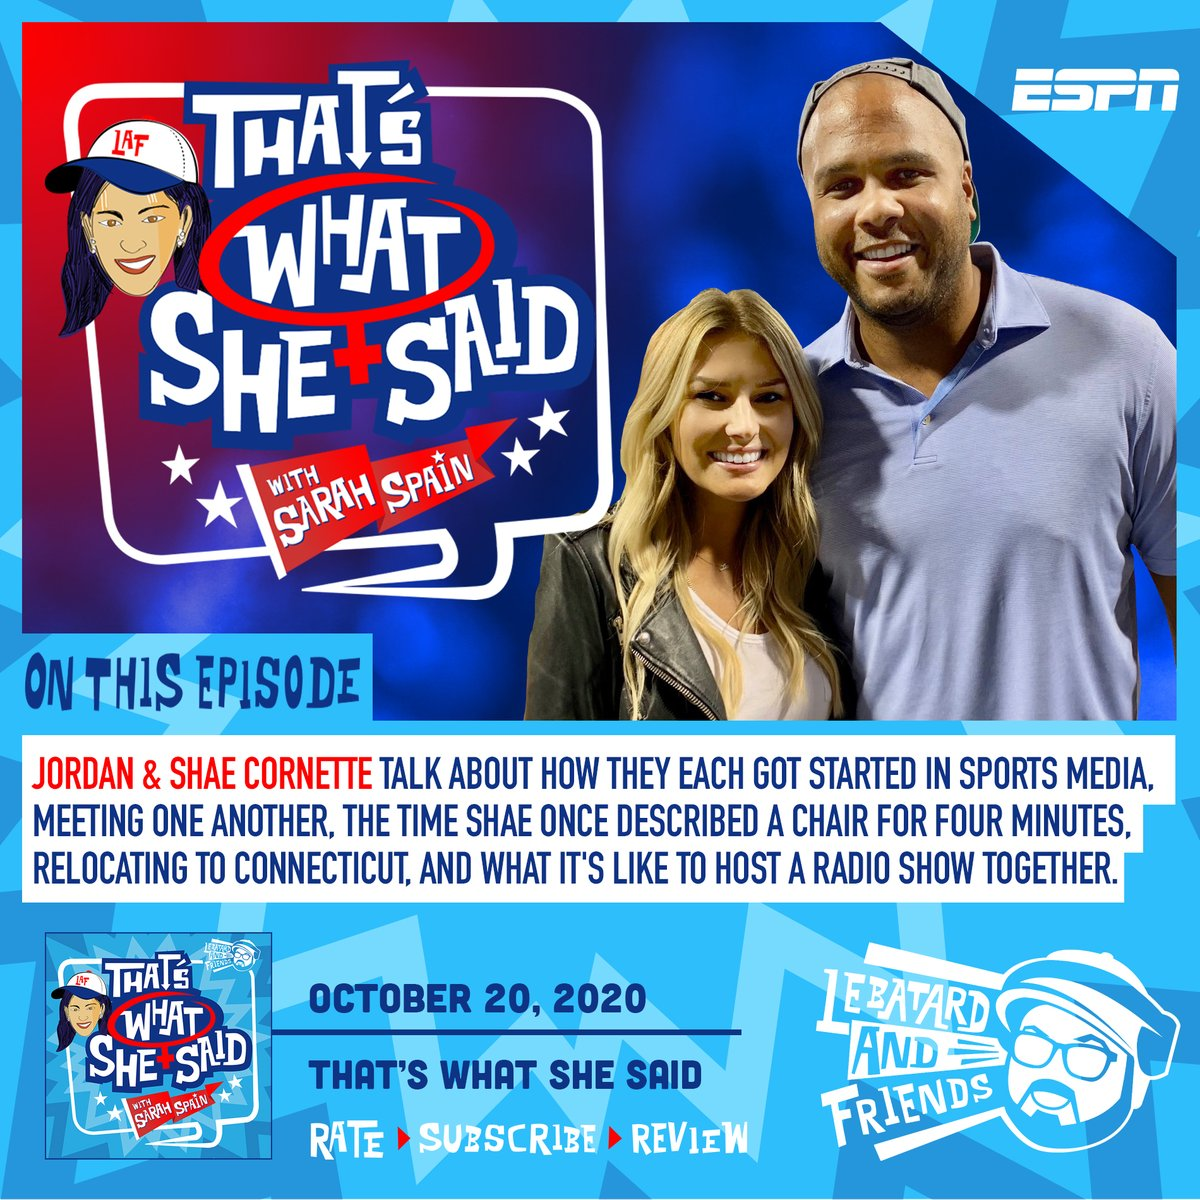 On the latest #TWSS pod, @SarahSpain  talks to @jordancornette  and @shaepeppler  about how they each got started in sports media, meeting one another along the way, the time Shae once described a chair for four minutes, and much more!   🔊 https://t.co/l70Un1p05O  #ESPNPodcasts https://t.co/EiGGd81nrH